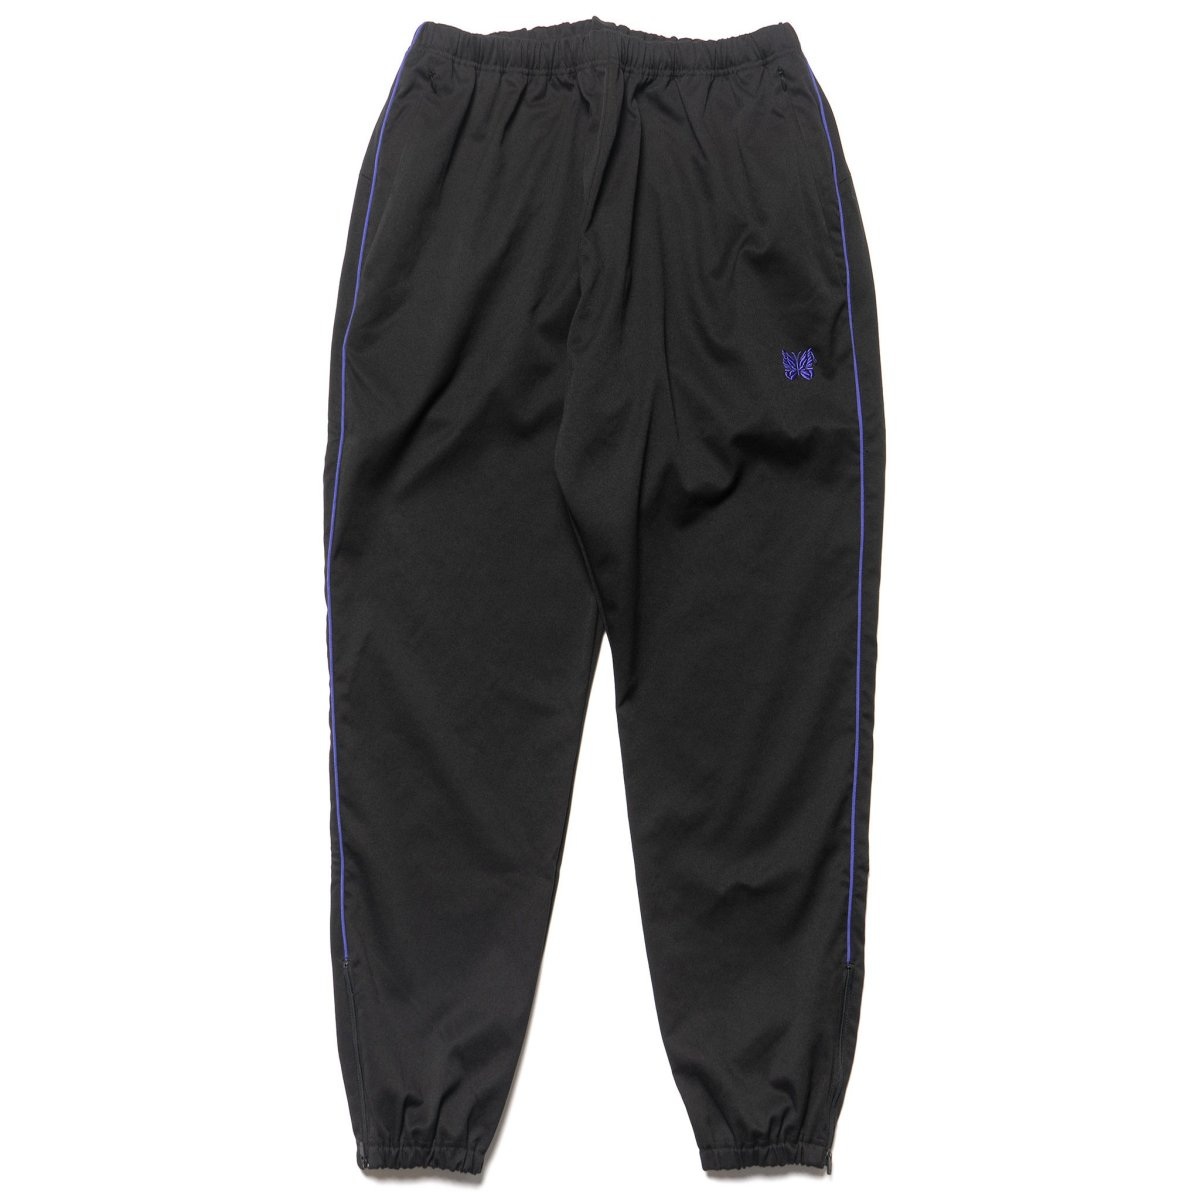 needles-line-seam-pocket-easy-pants-poly-smooth-black